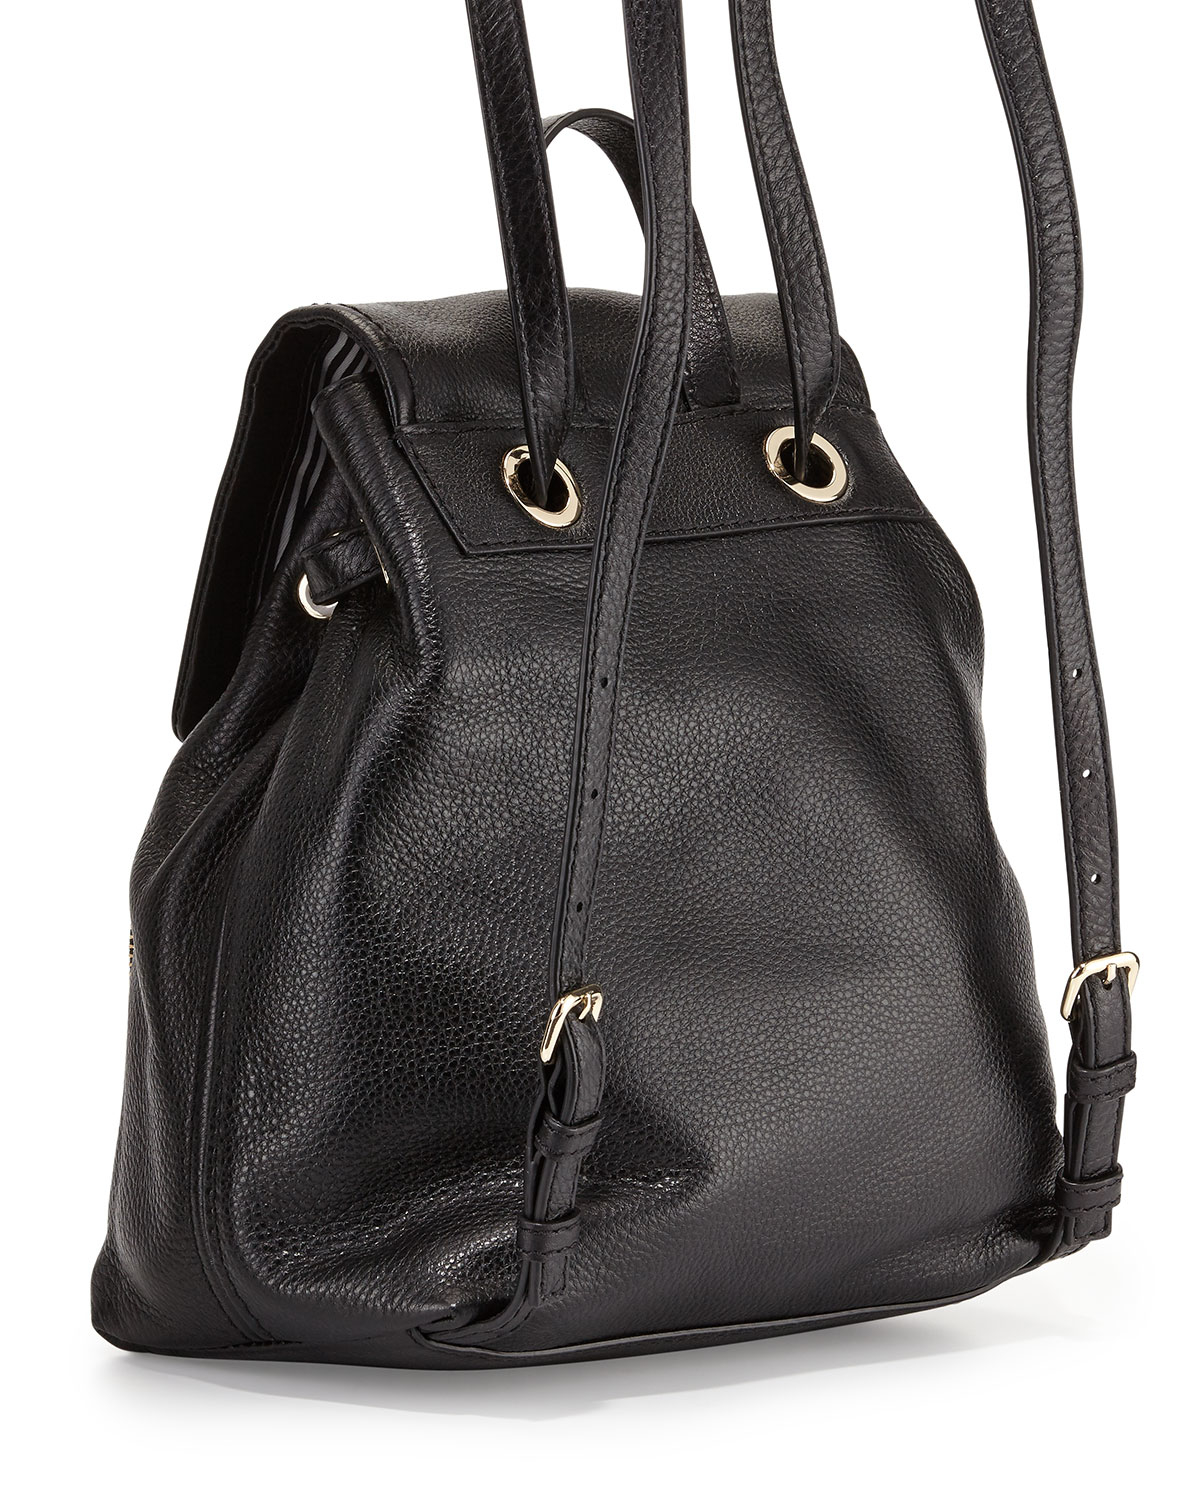 150bf6c62aa6f Lyst - Kate Spade Cobble Hill Charley Leather Backpack in Black